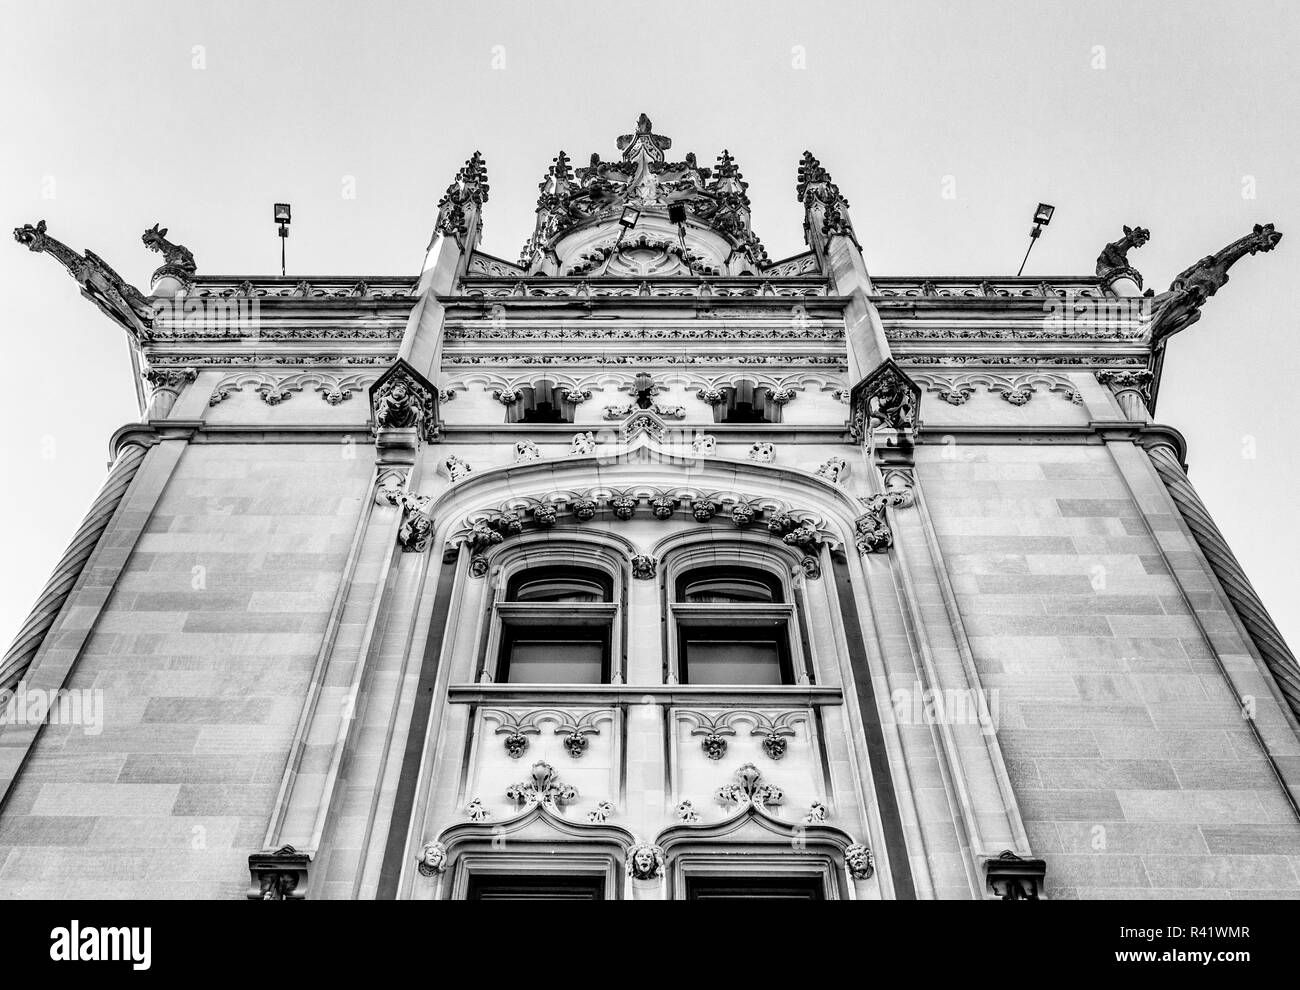 View from below of the entrance tower to the Biltmore House in Asheville, NC, USA - Stock Image